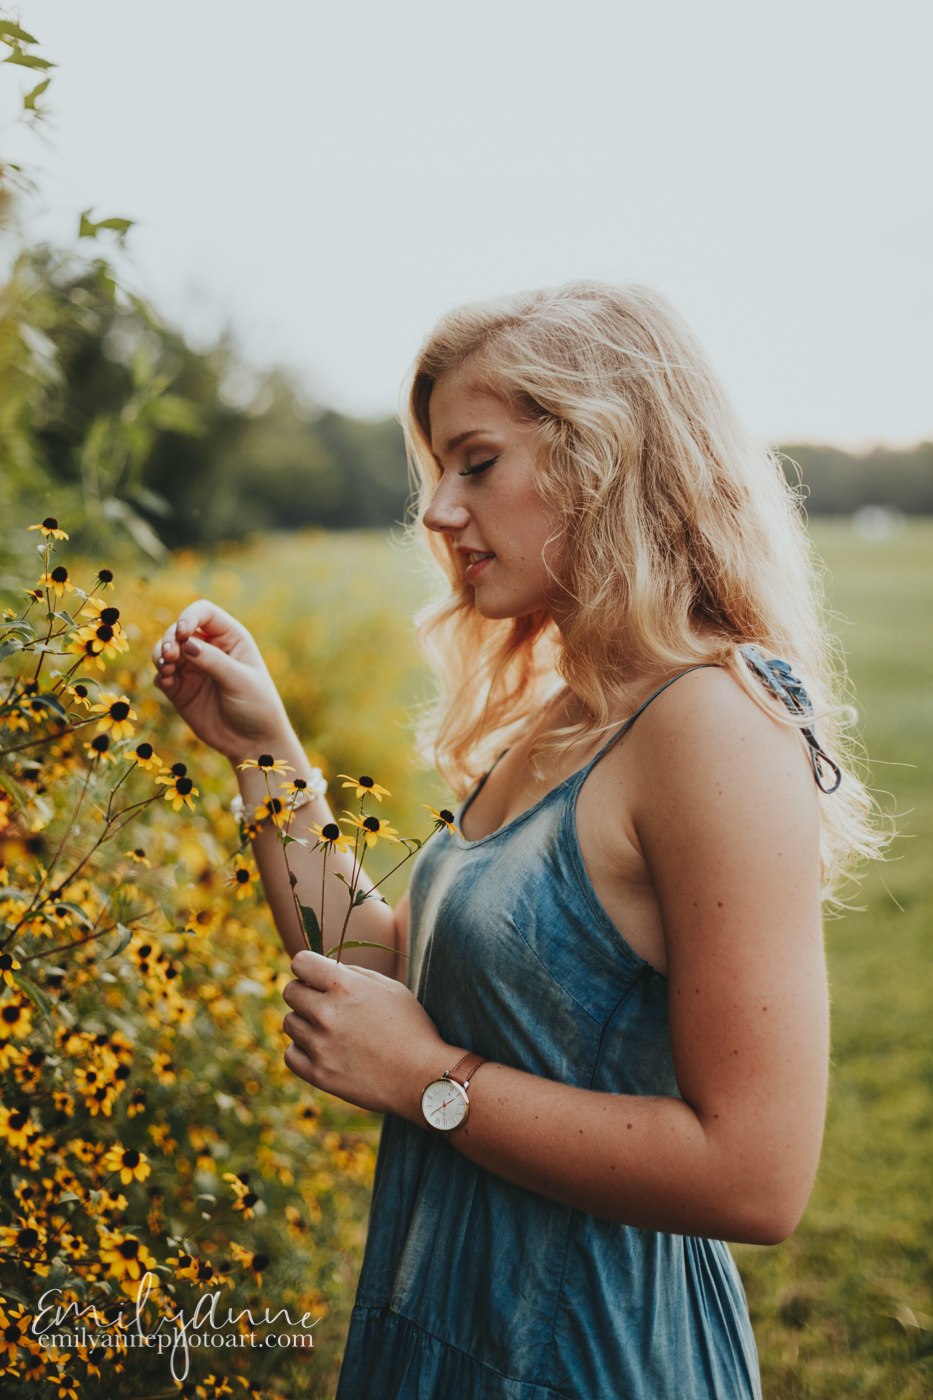 Top go to senior portrait photographer in Nashville, Atlanta, and Brentwood and Franklin TN gorgeous sunny senior portraits with girl out in a field picking flowers; inspirational shots